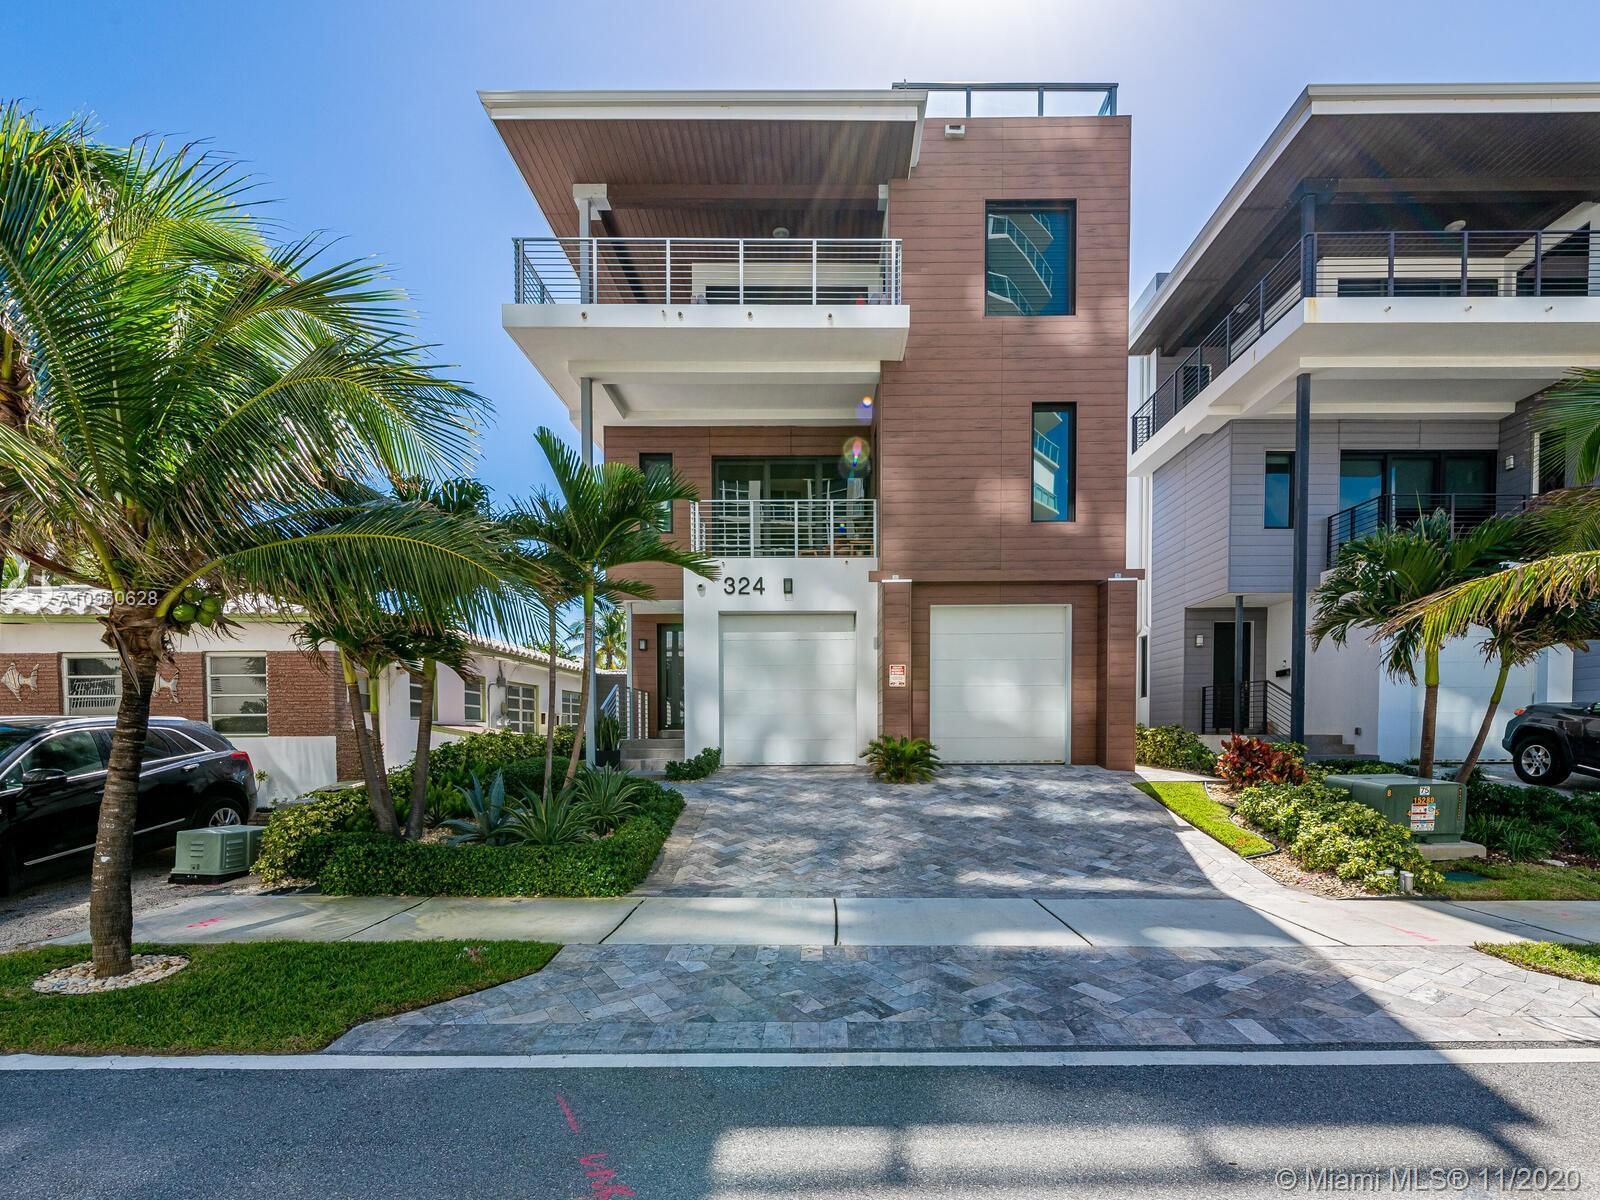 Stunning contemporary 4 Bed 3.5 Bath Tri-Level Beach home with direct ocean views. This 3,000+ sf ho